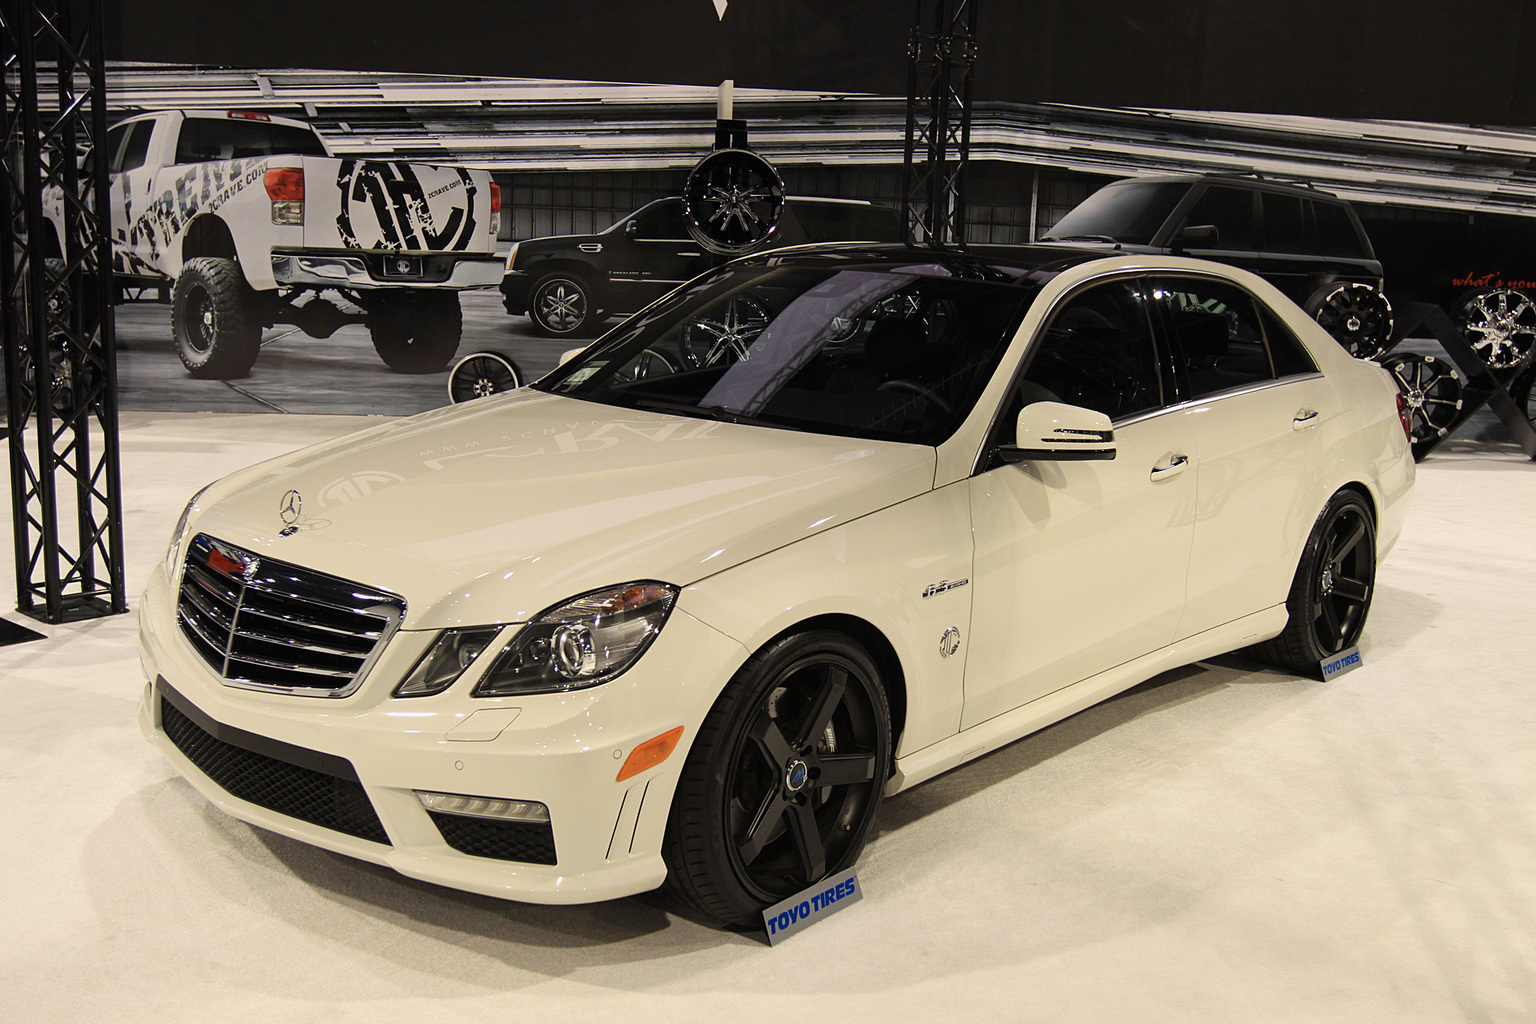 2010 Mercedes-Benz E 63 AMG Sedan Gallery